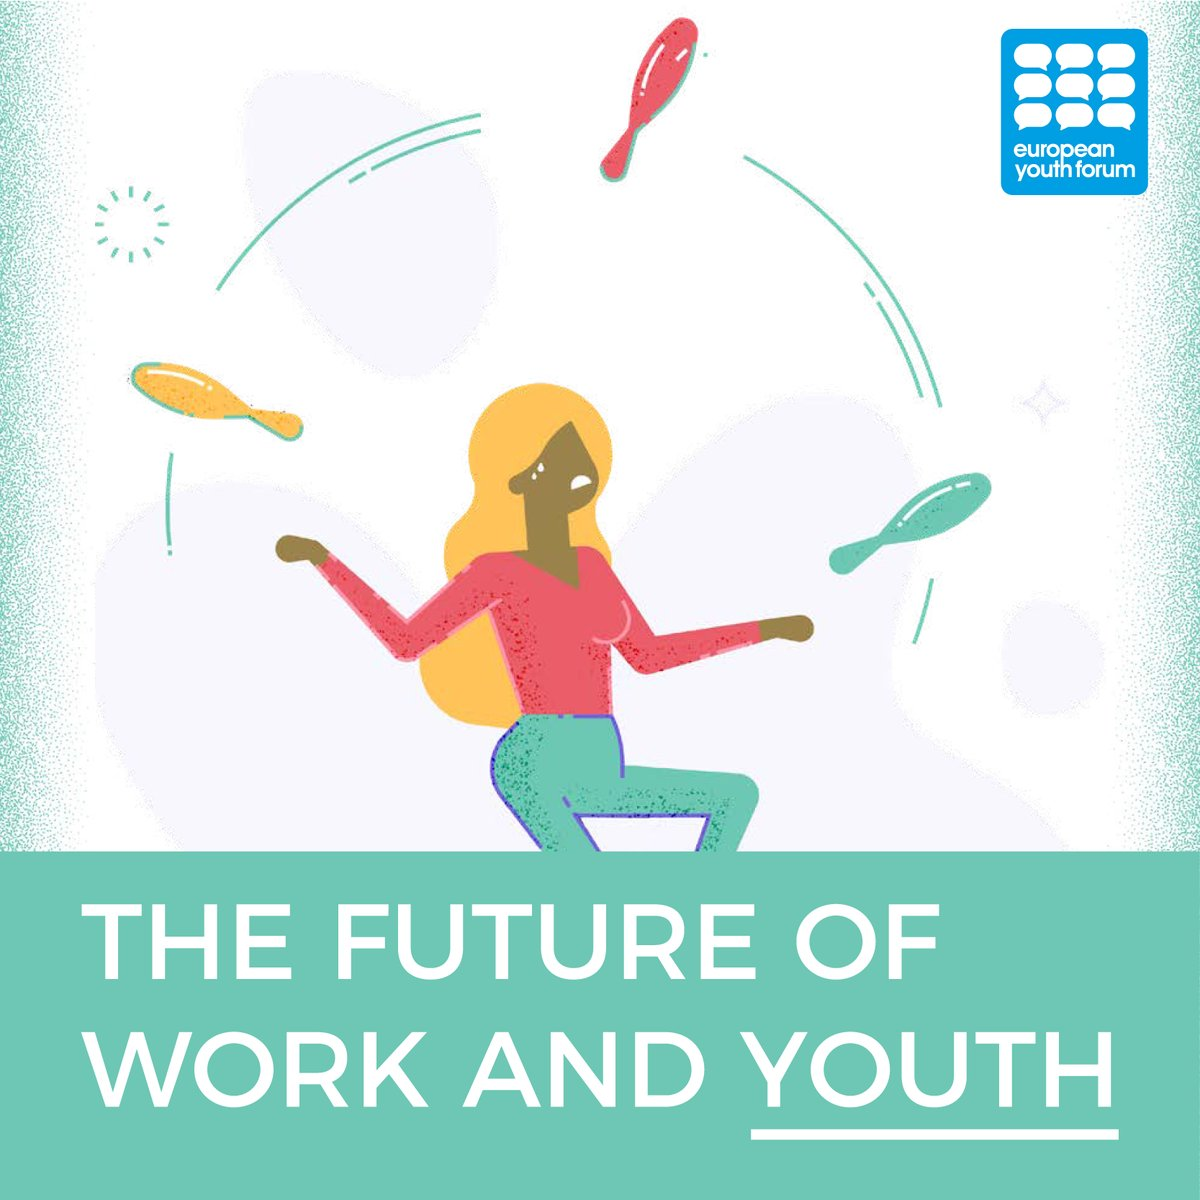 European Youth Forum commits to advocate for a youth-inclusive future of work in Europe